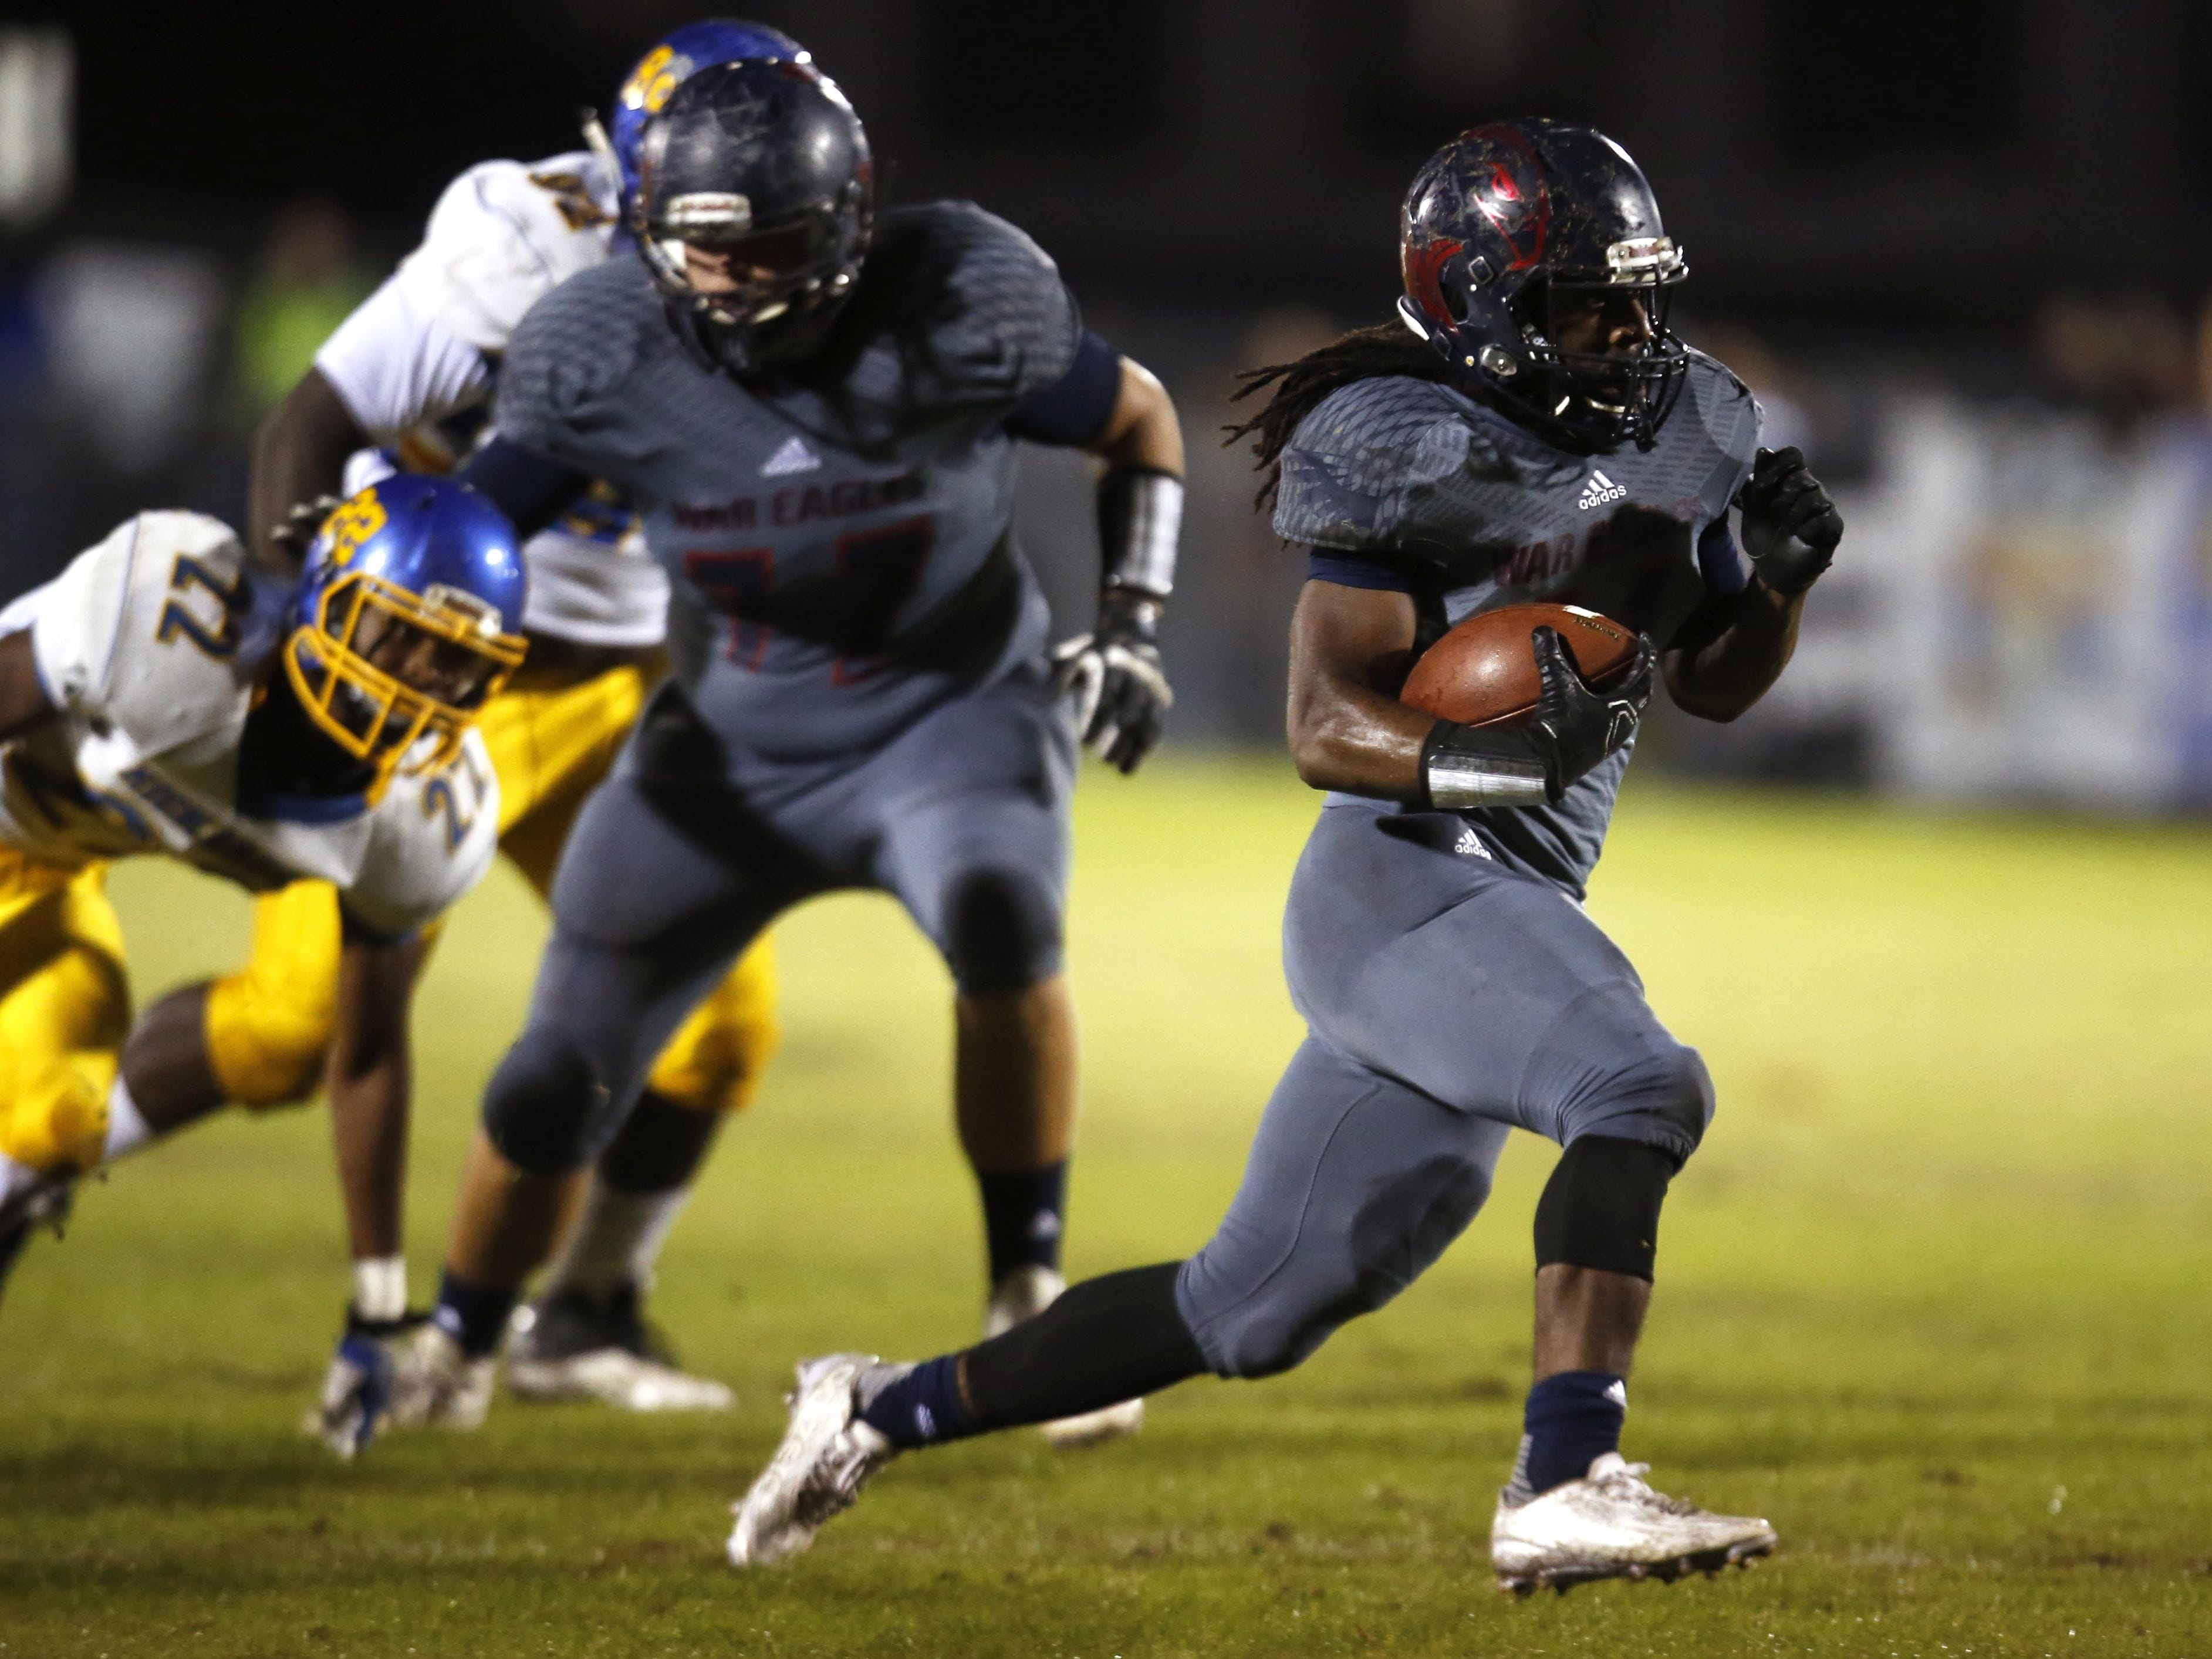 Wakulla's Demarcus Lindsey takes off for a long run down to the one-yard line against Rickards during their playoff game on Friday.